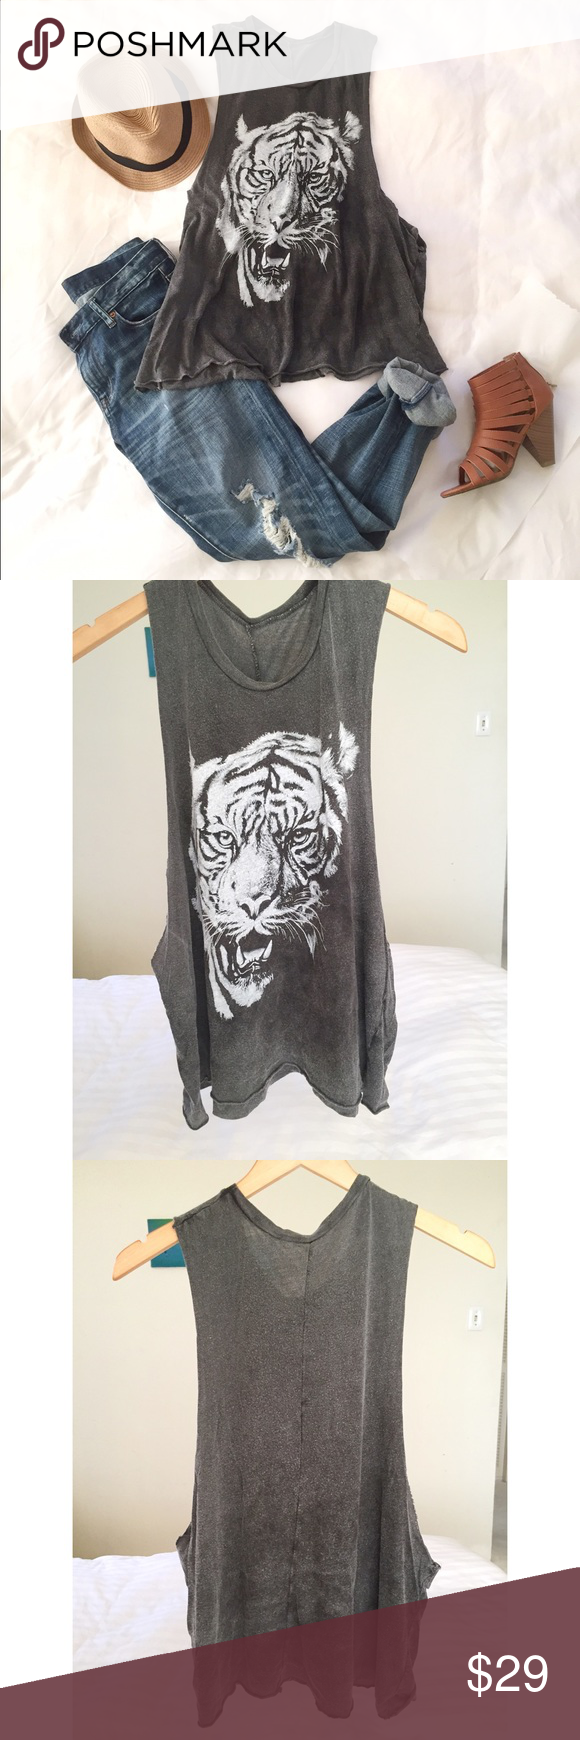 54b5bbfd NWOT Brandy Melville Grunge Muscle Tee NWOT Dark gray tiger face print  grunge/distressed muscle tank. Super soft and comfy! 60% Cotton 40%  Micromodal ...